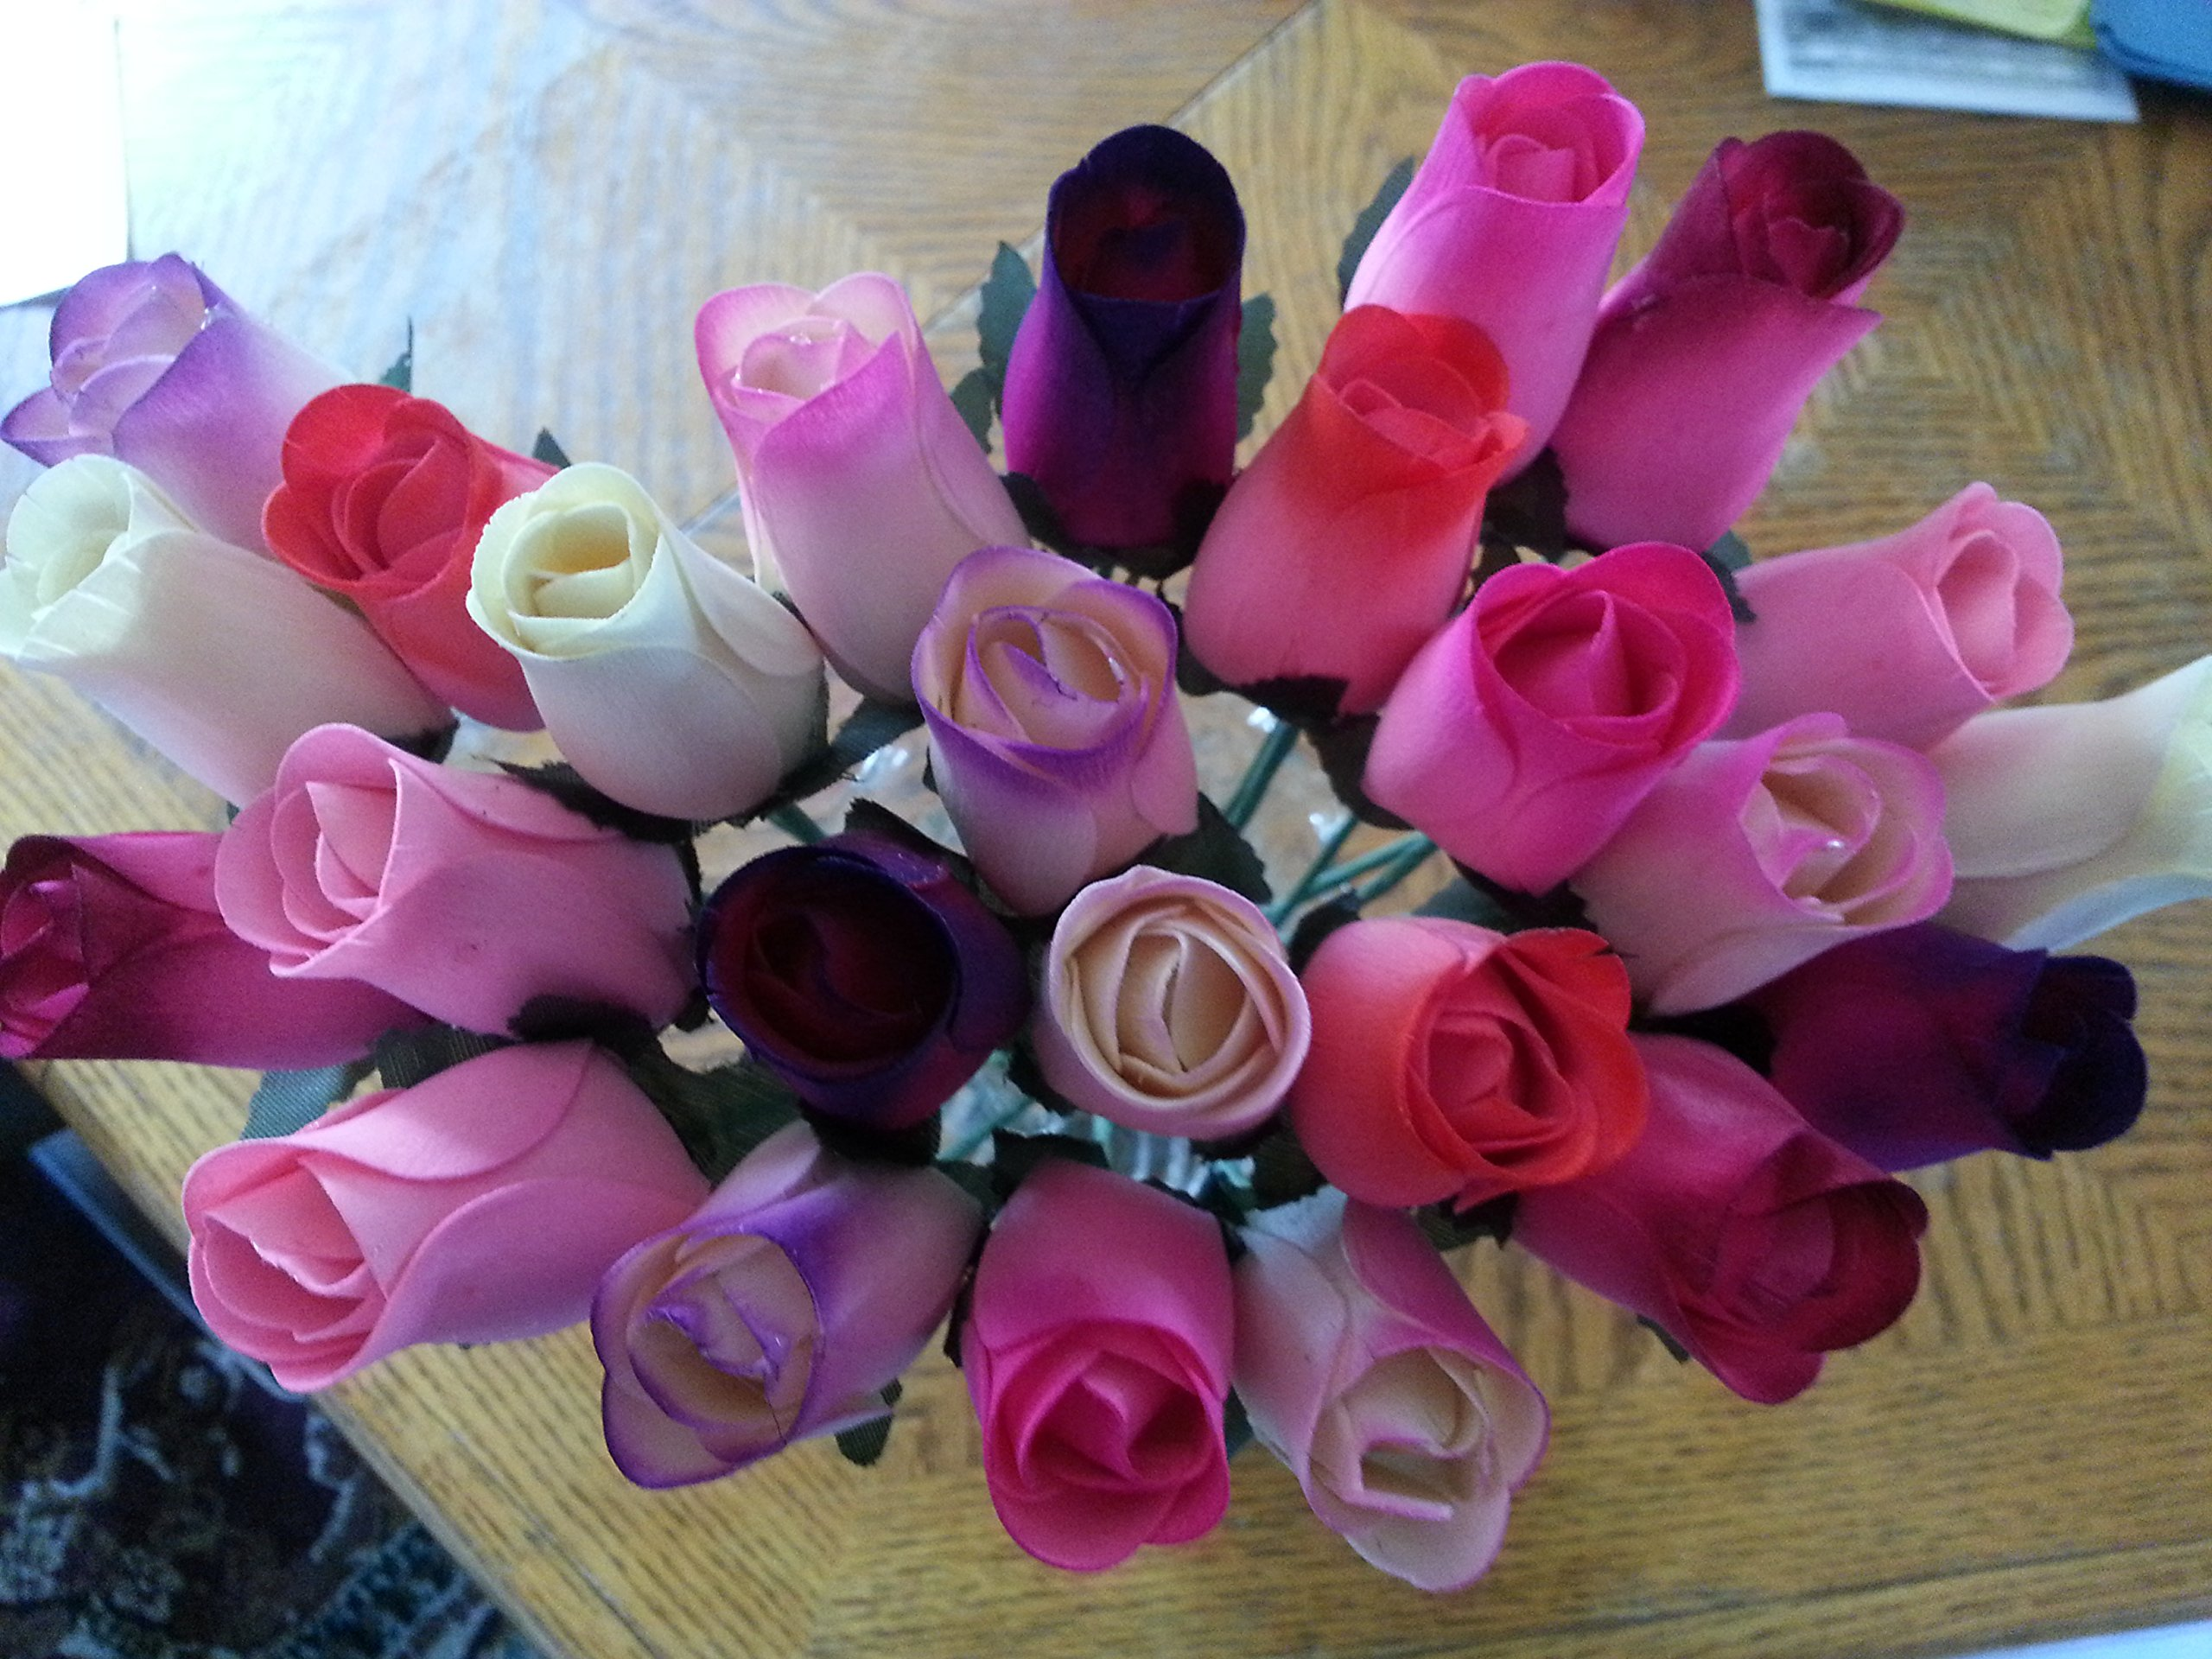 2 Dozen Wooden Roses Mixture of 8 Colors-Little Chicago Distributing by Little Chicago Distributing-Forever Wood Roses (Image #1)